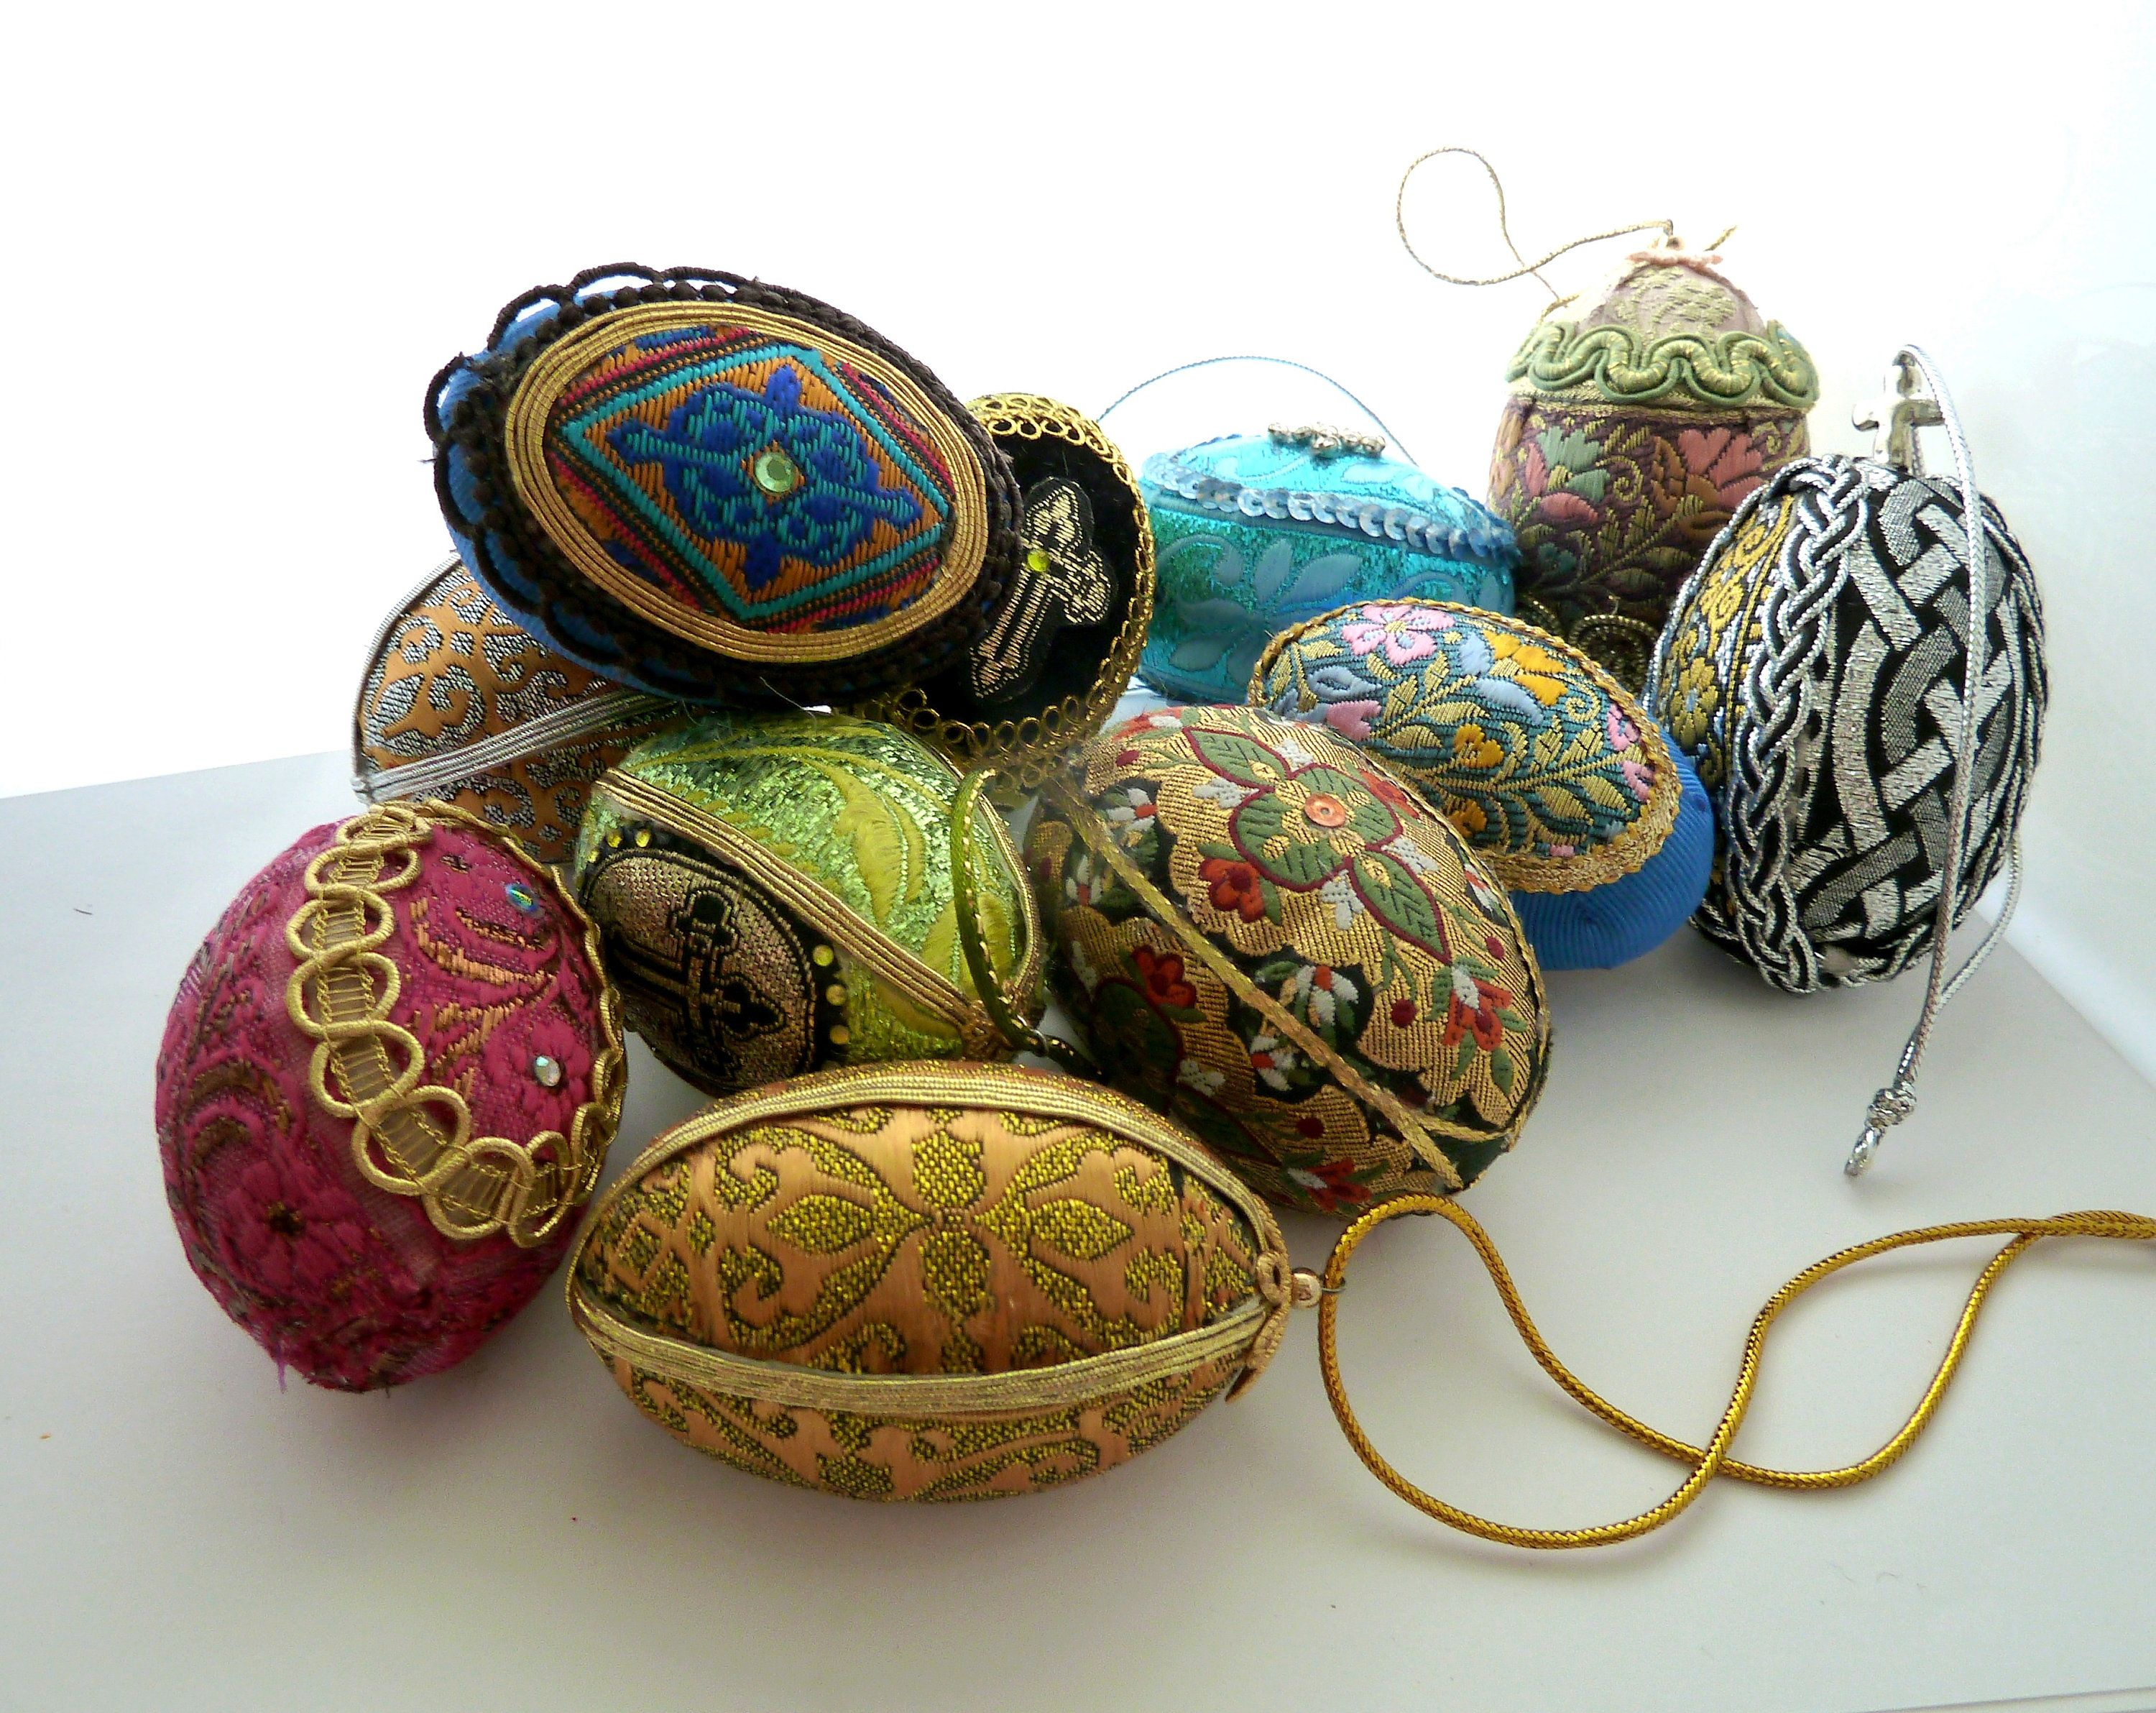 Easter egg textile art egg inspired by faberge russian traditions easter egg textile art egg inspired by faberge russian traditions easter faberge style multi color negle Image collections